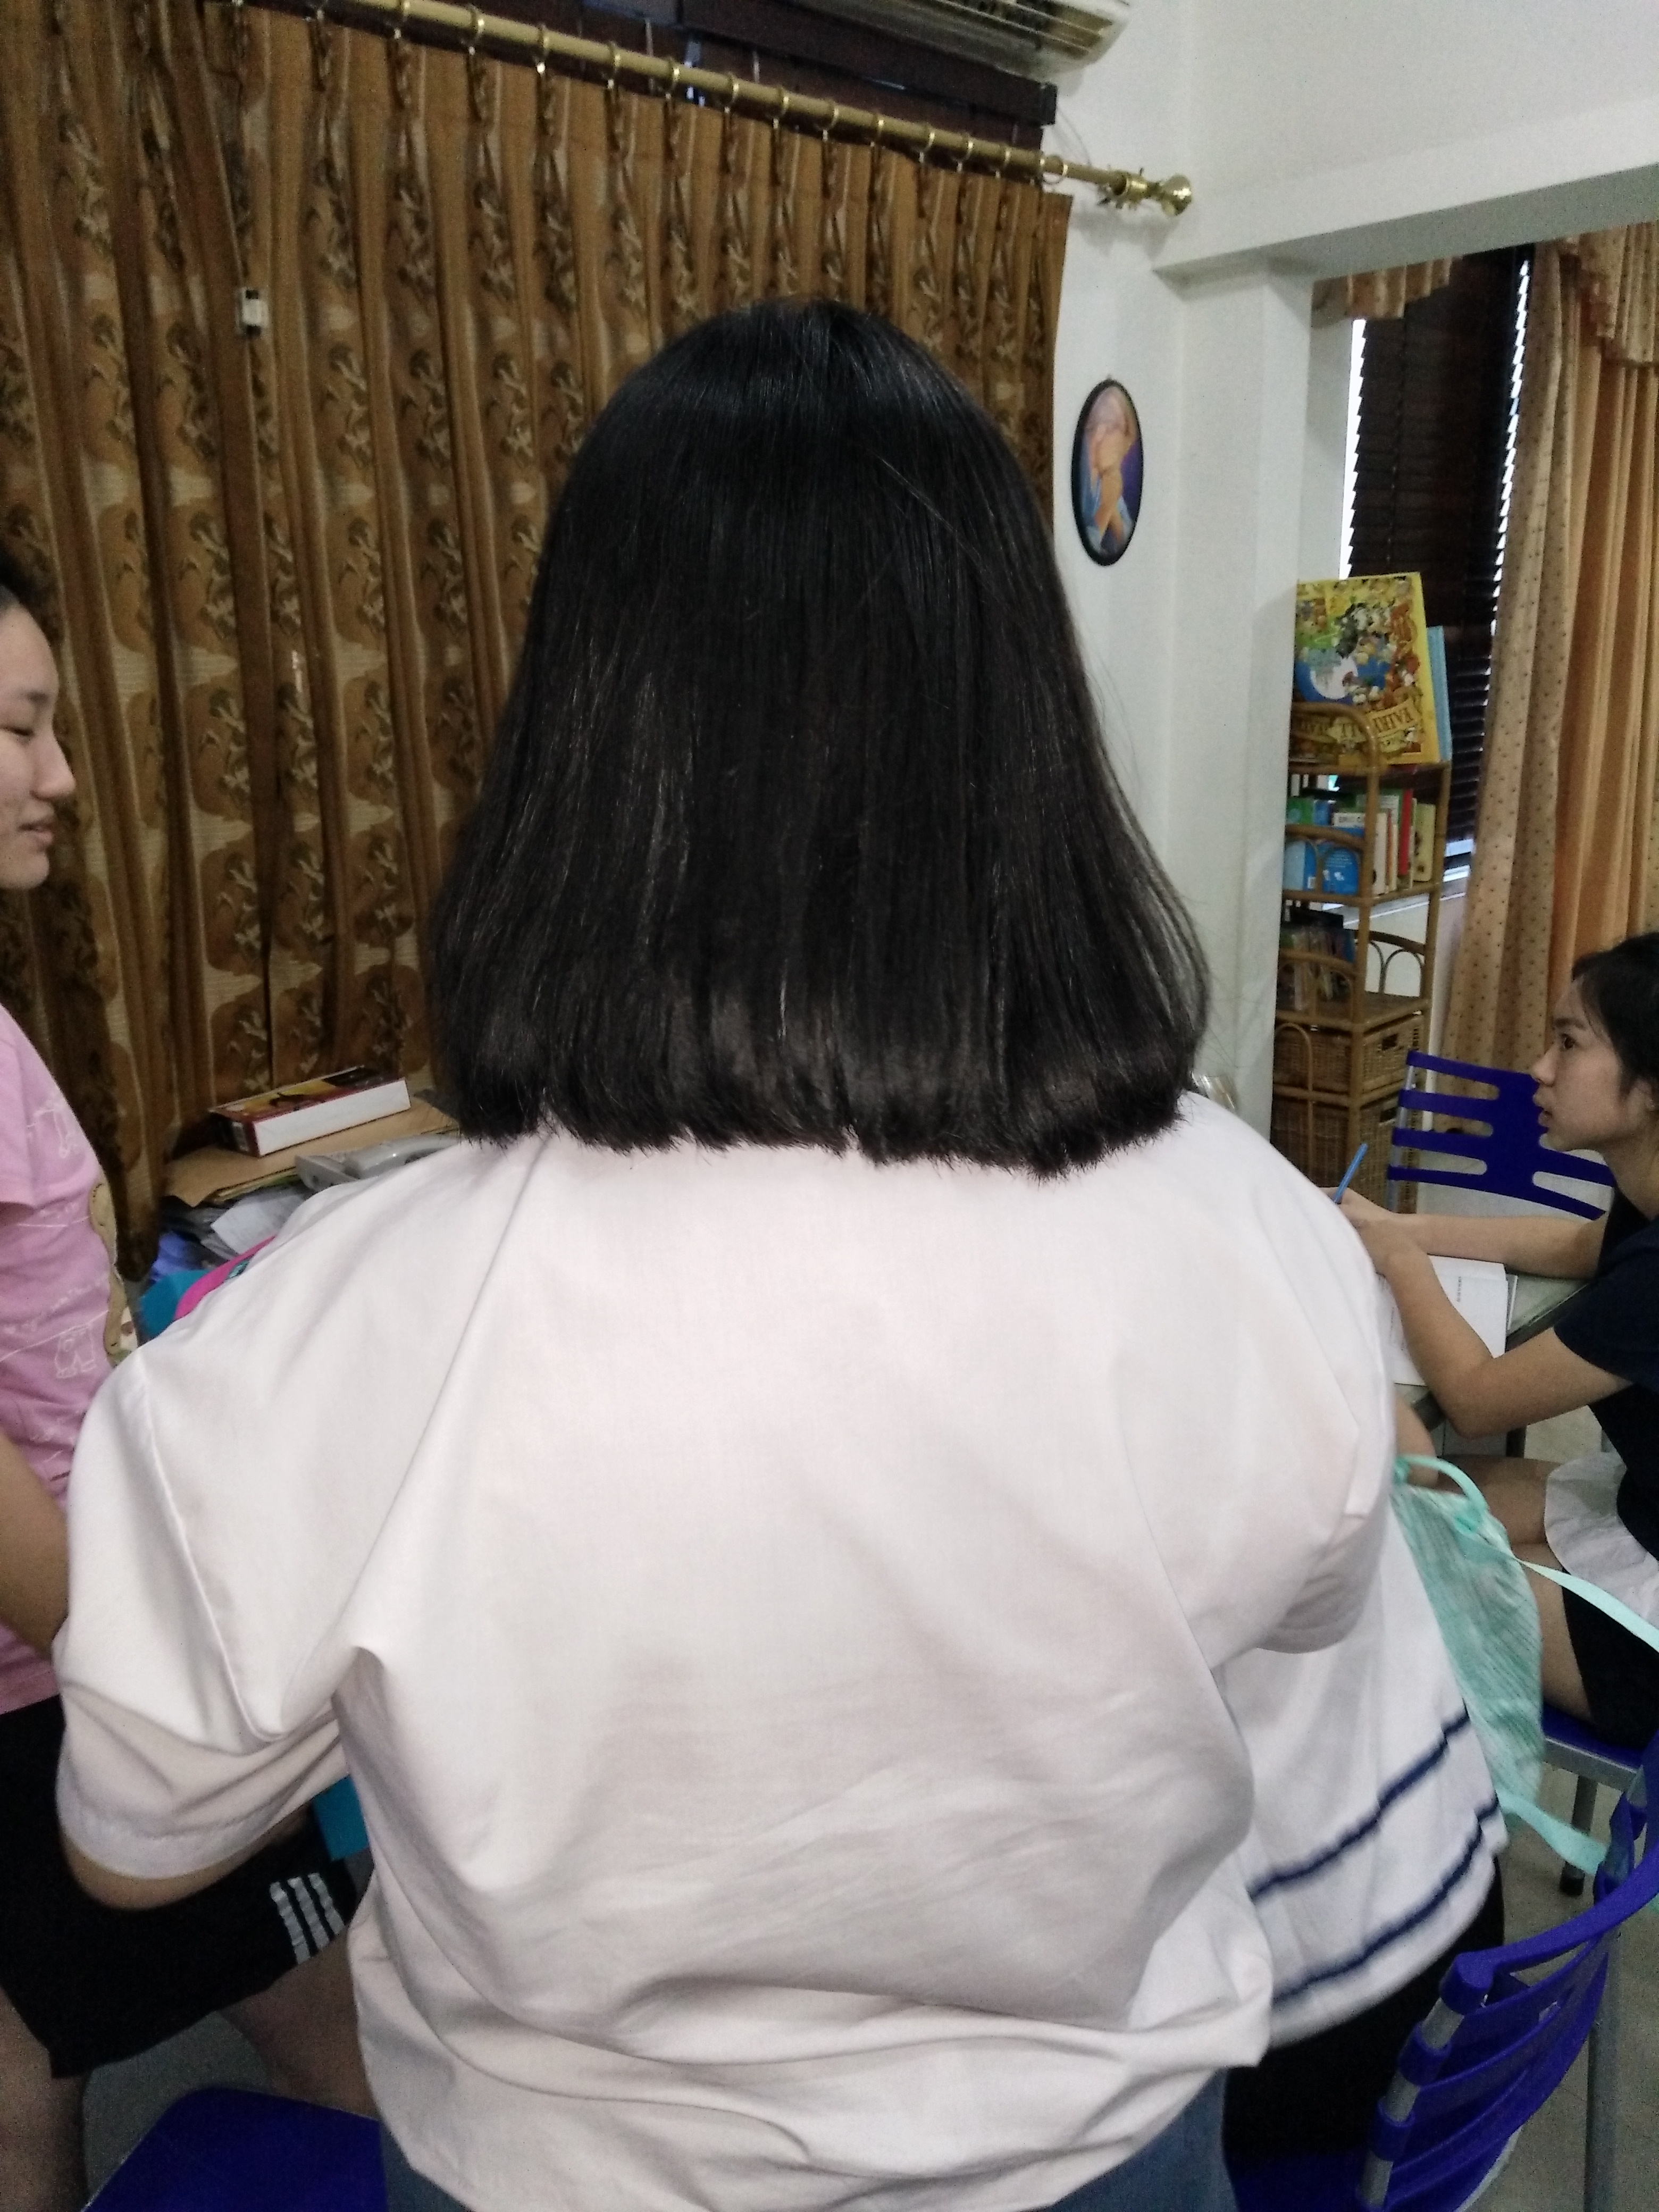 Filerear View Of A Student Girl With A Bob Haircut 08g